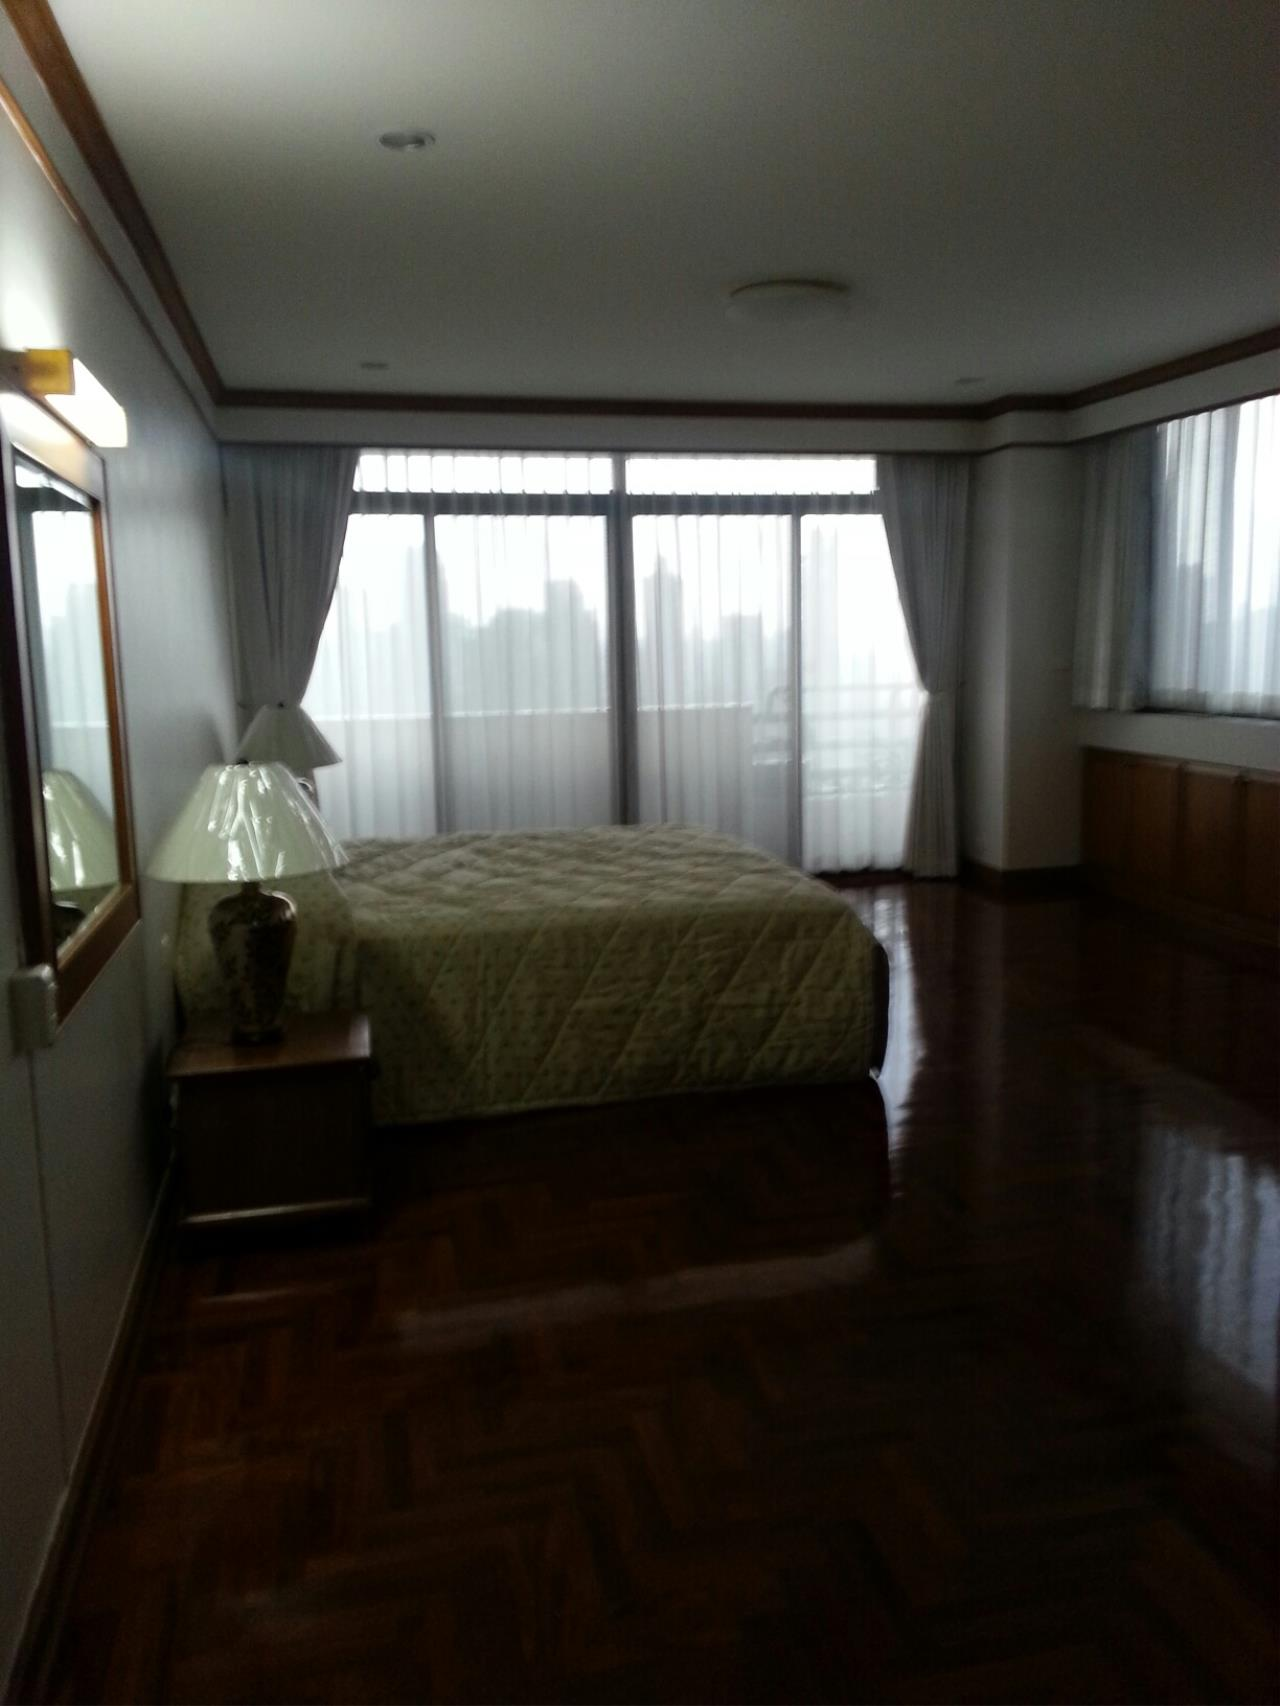 Piri Property Agency's 3+1 bedrooms Condominium  on 23 floor For Rent 3+1 1